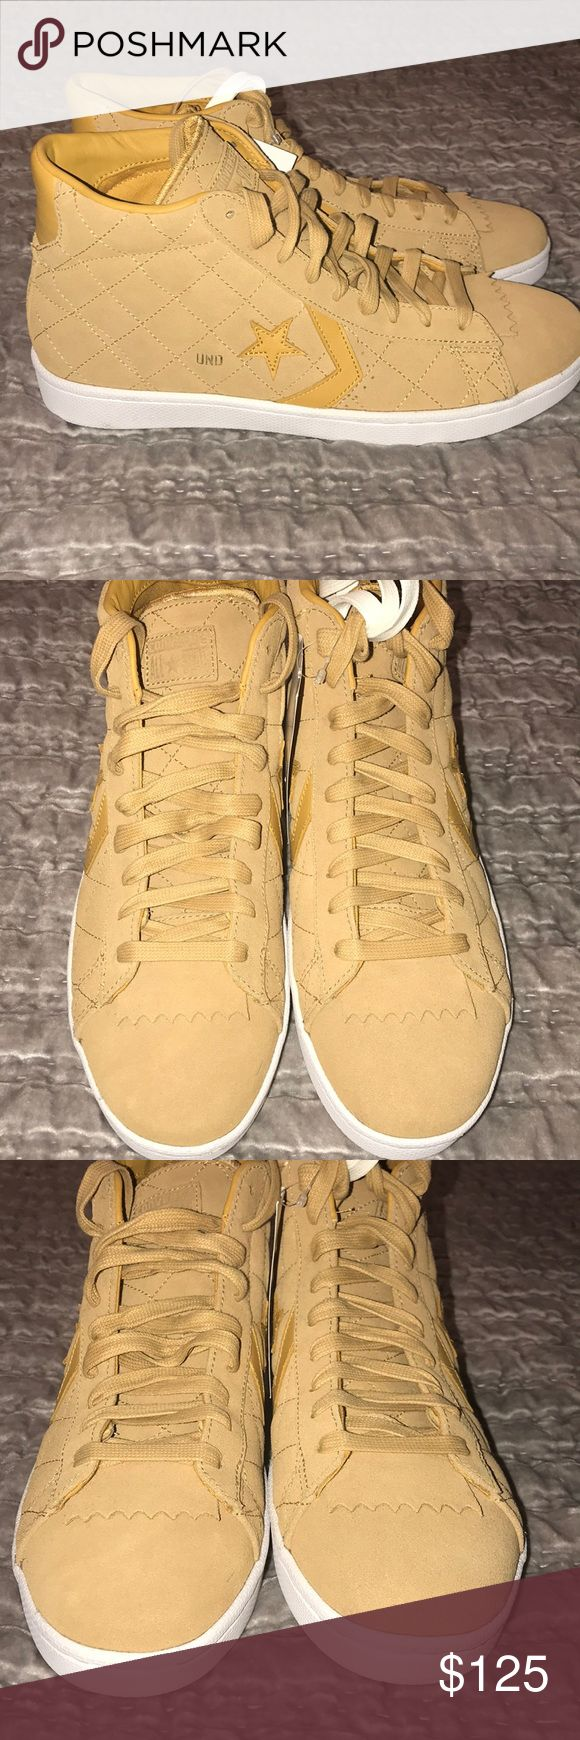 Undefeated x Converse Pro Leather Mid Taffy Used  Mens Undefeated x Converse Pro Leather Mid Taffy Brown Gold White Size 11.5 (No Box) Converse Shoes Sneakers